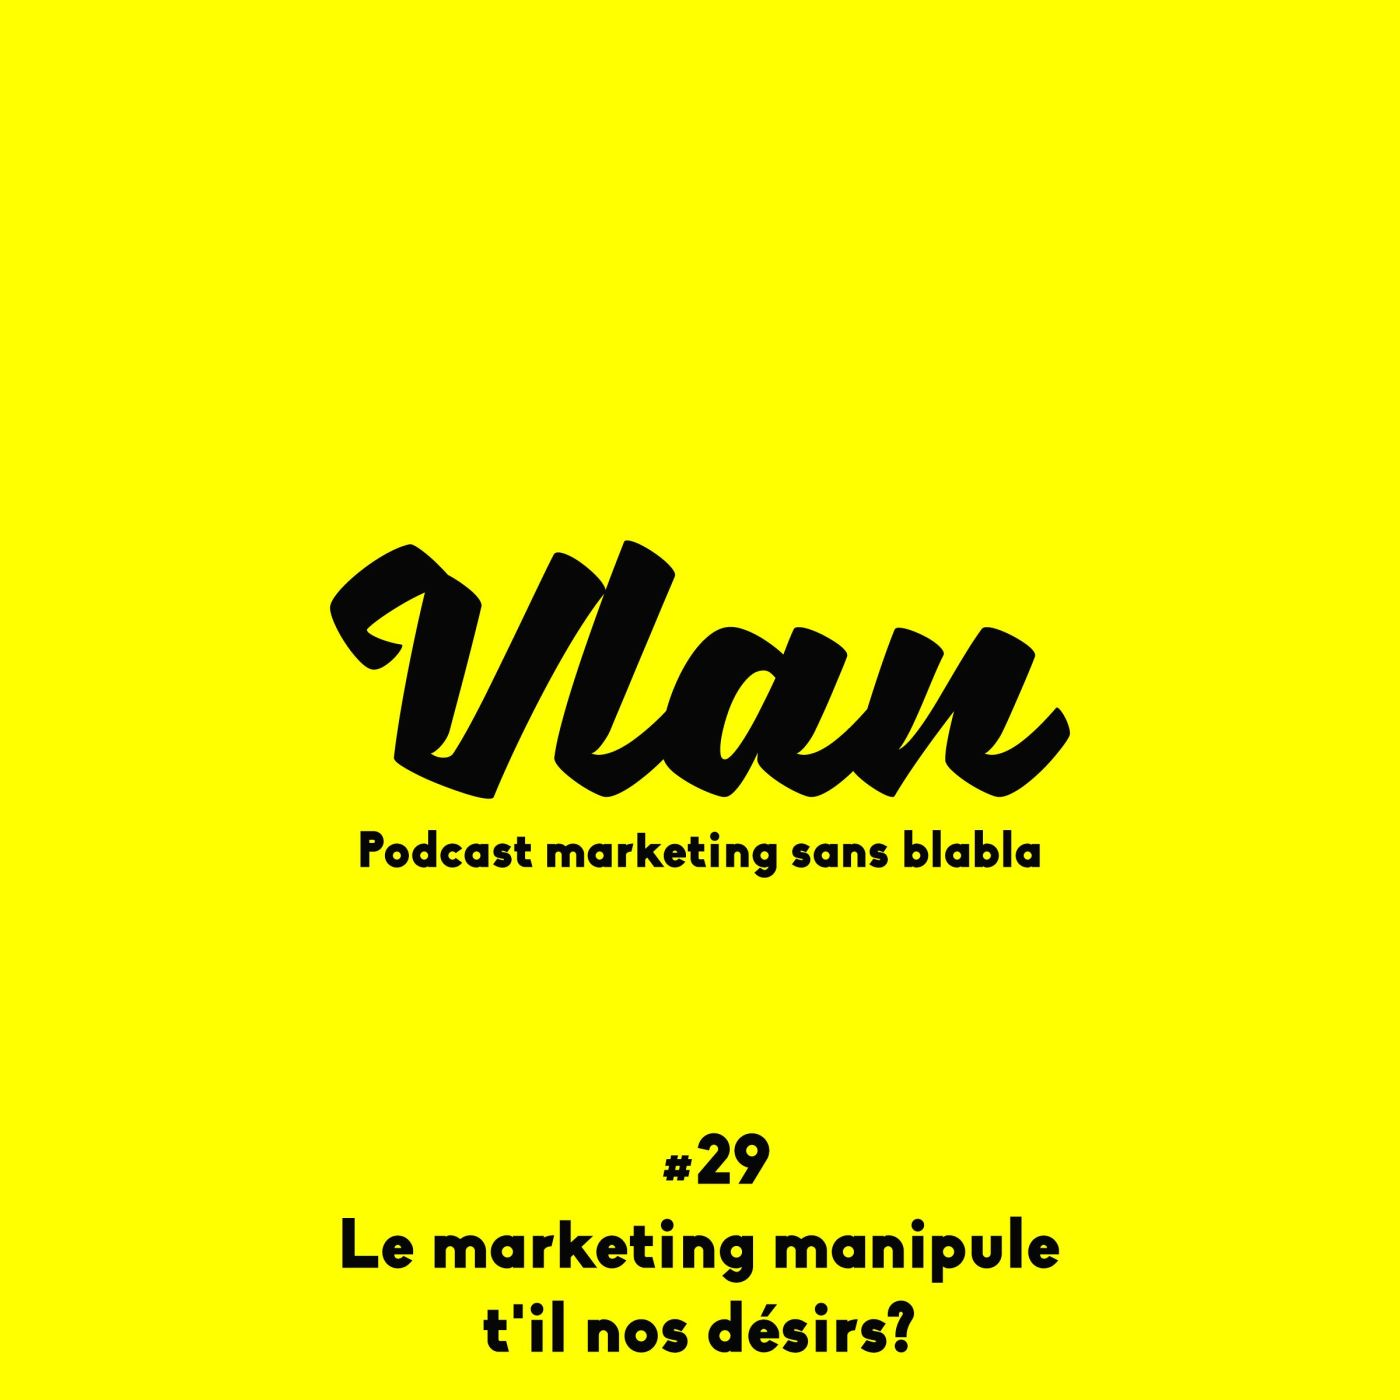 Vlan #29 Le marketing manipule-t-il nos désirs?